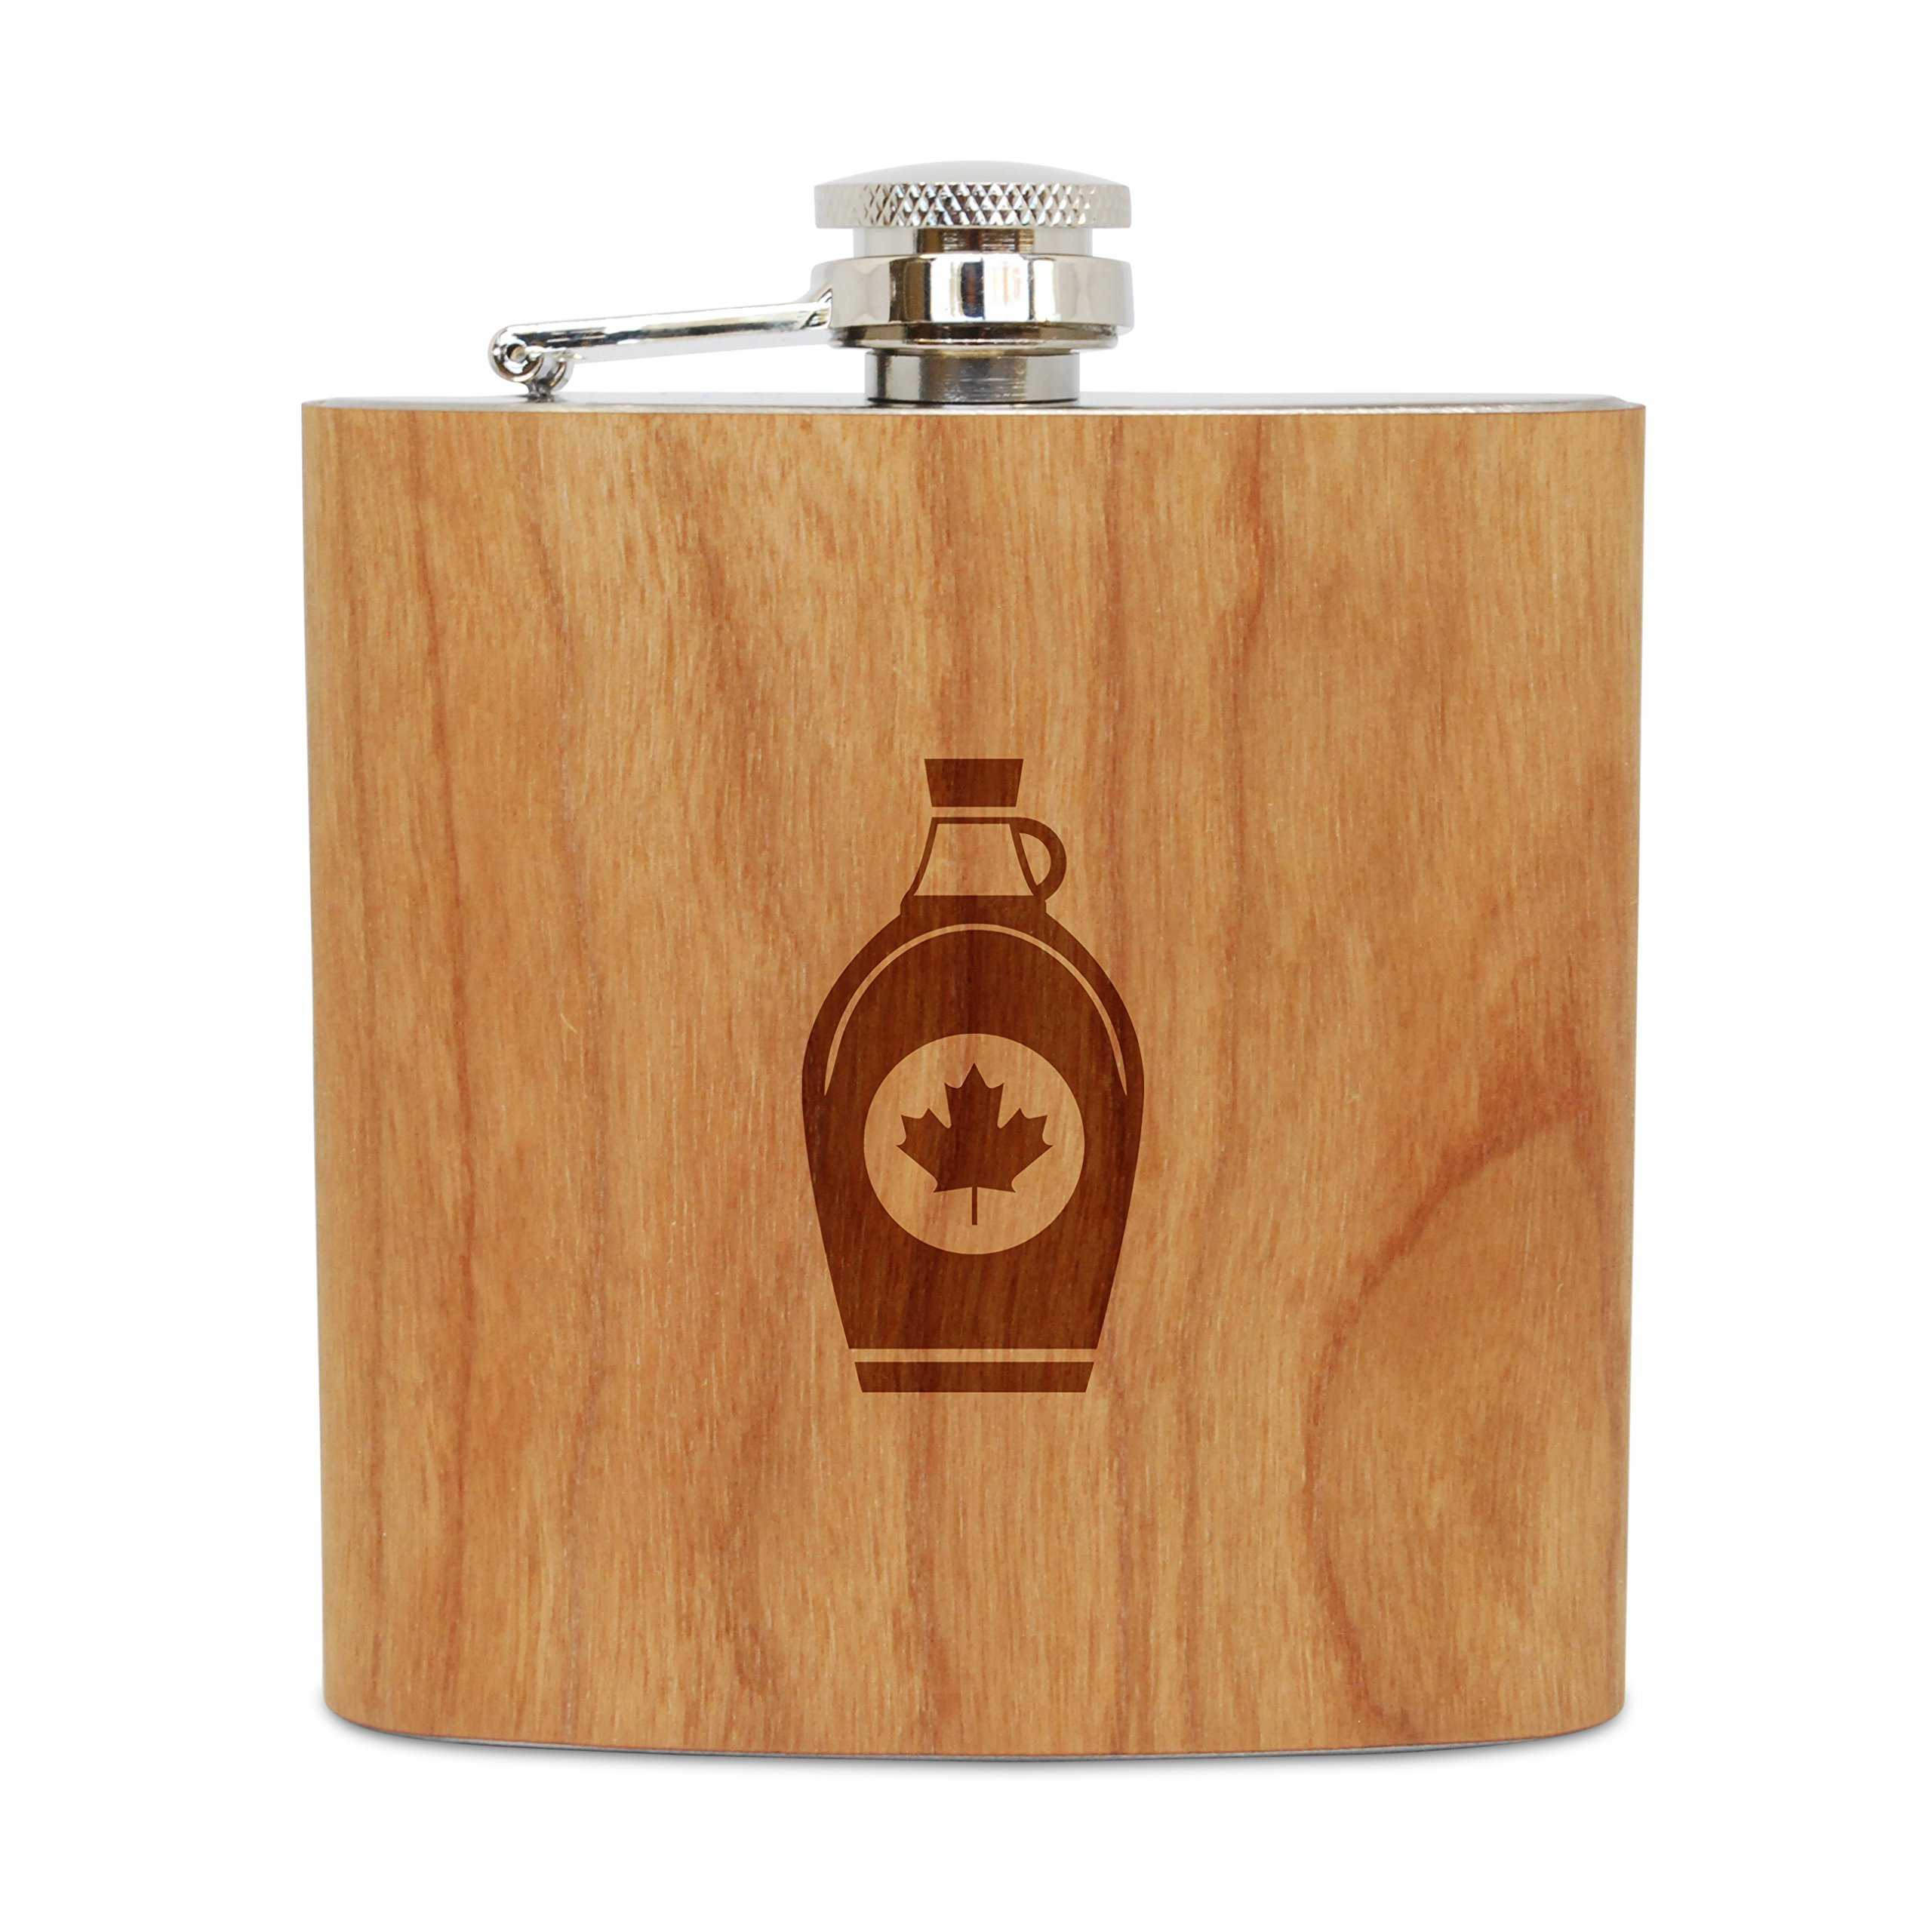 WOODEN ACCESSORIES COMPANY Cherry Wood Flask With Stainless Steel Body - Laser Engraved Flask With Maple Syrup Design - 6 Oz Wood Hip Flask Handmade In USA